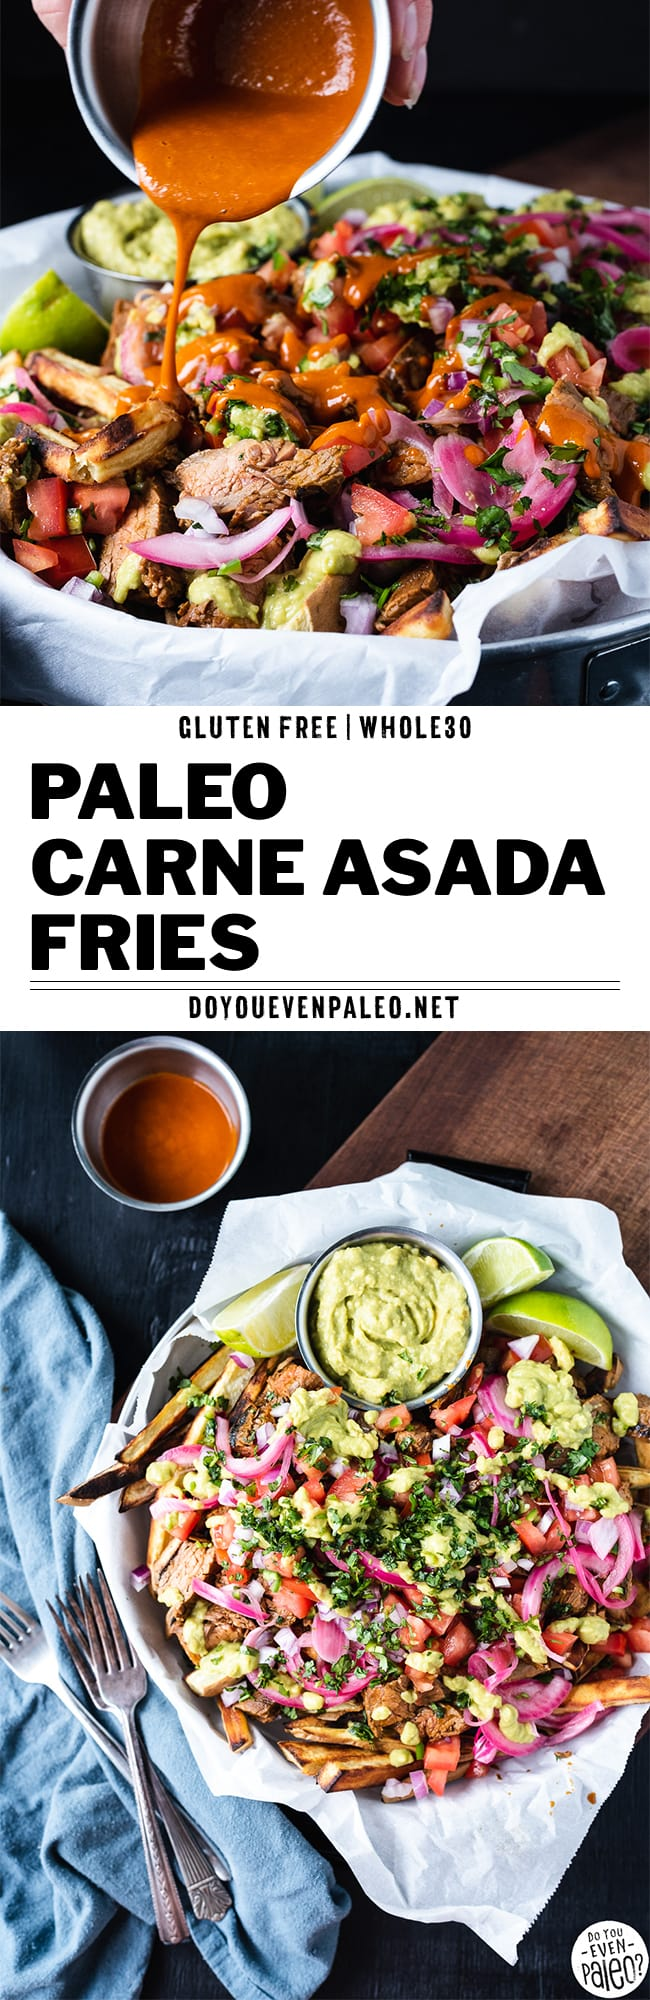 Paleo Carne Asada Fries Recipe